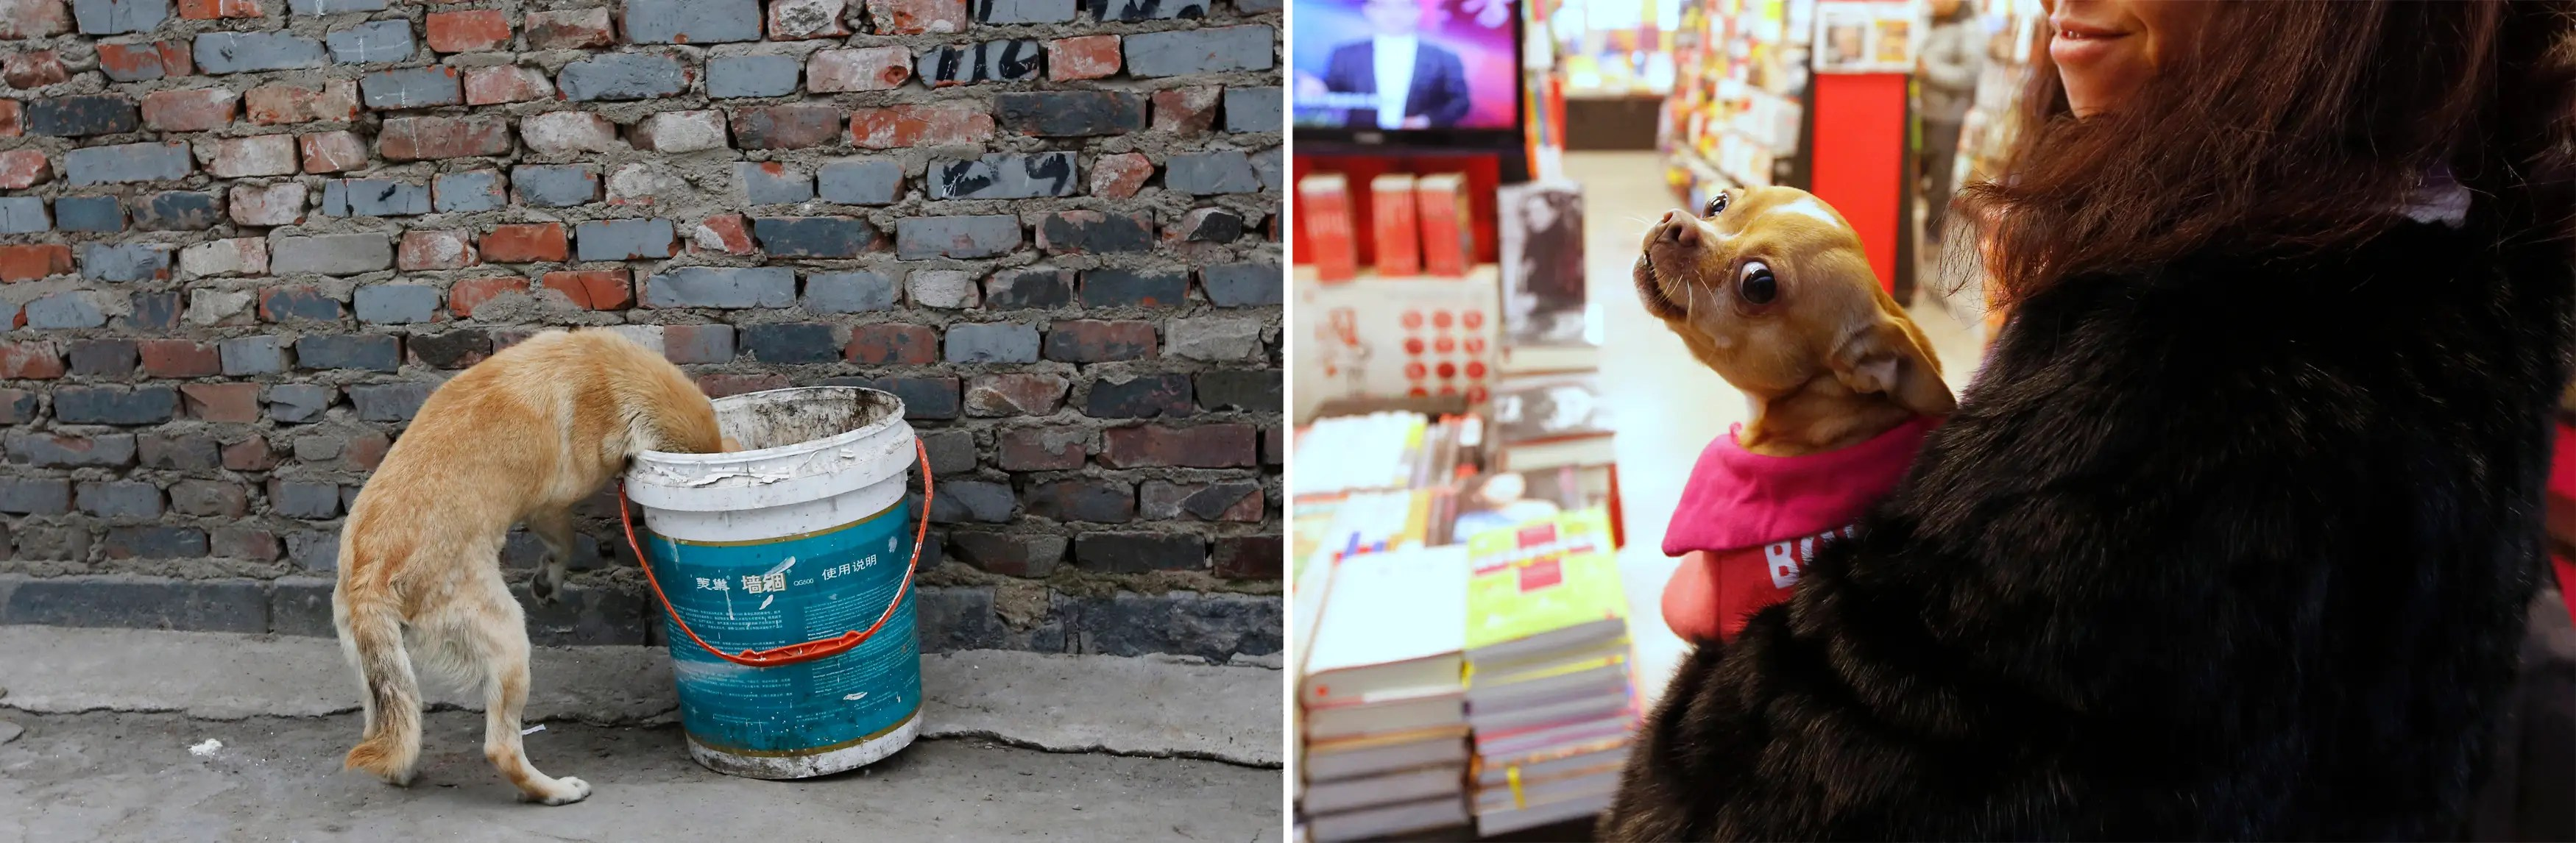 """""""(L) A dog rummaging for food in a garbage can at a residential area for migrant workers in Beijing and (R) A woman wearing a fur coat holding her pet dog at a book store inside an airport in Beijing."""""""